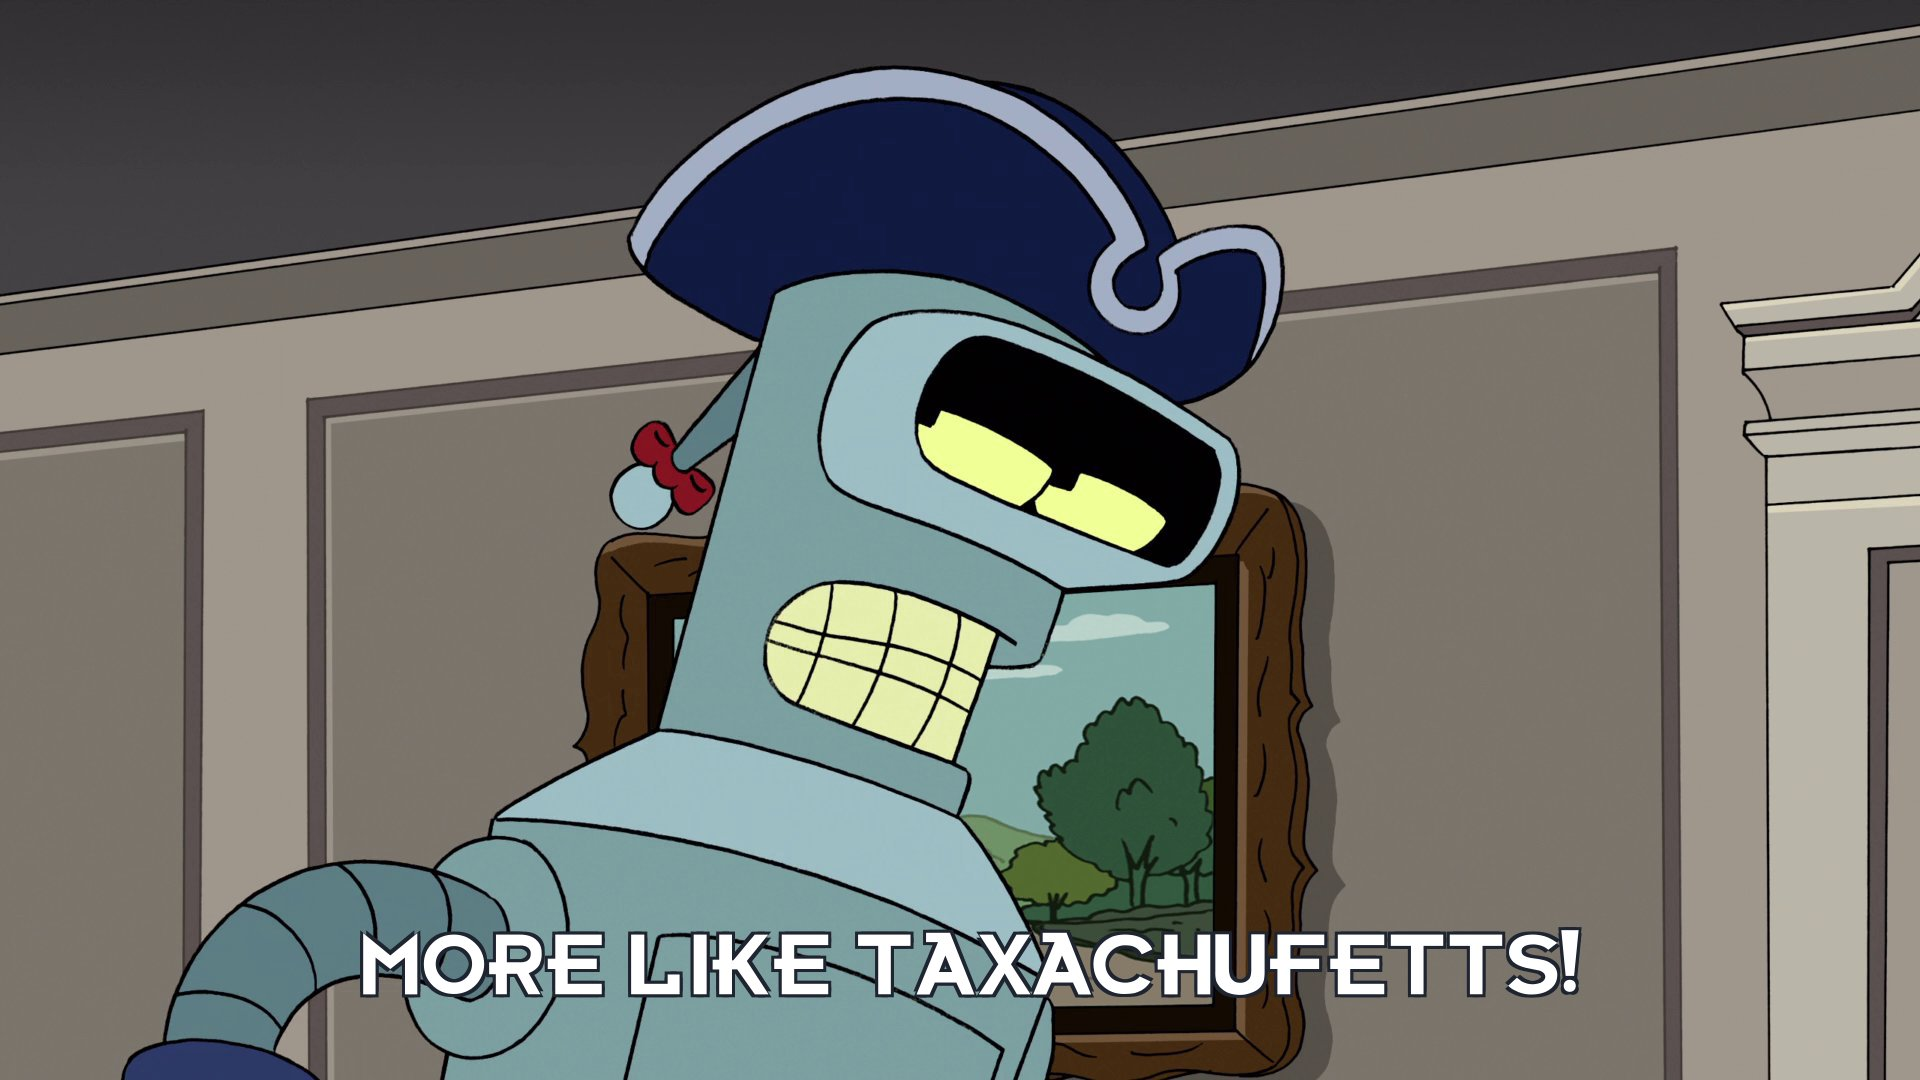 Bender Bending Rodriguez: More like Taxachufetts!